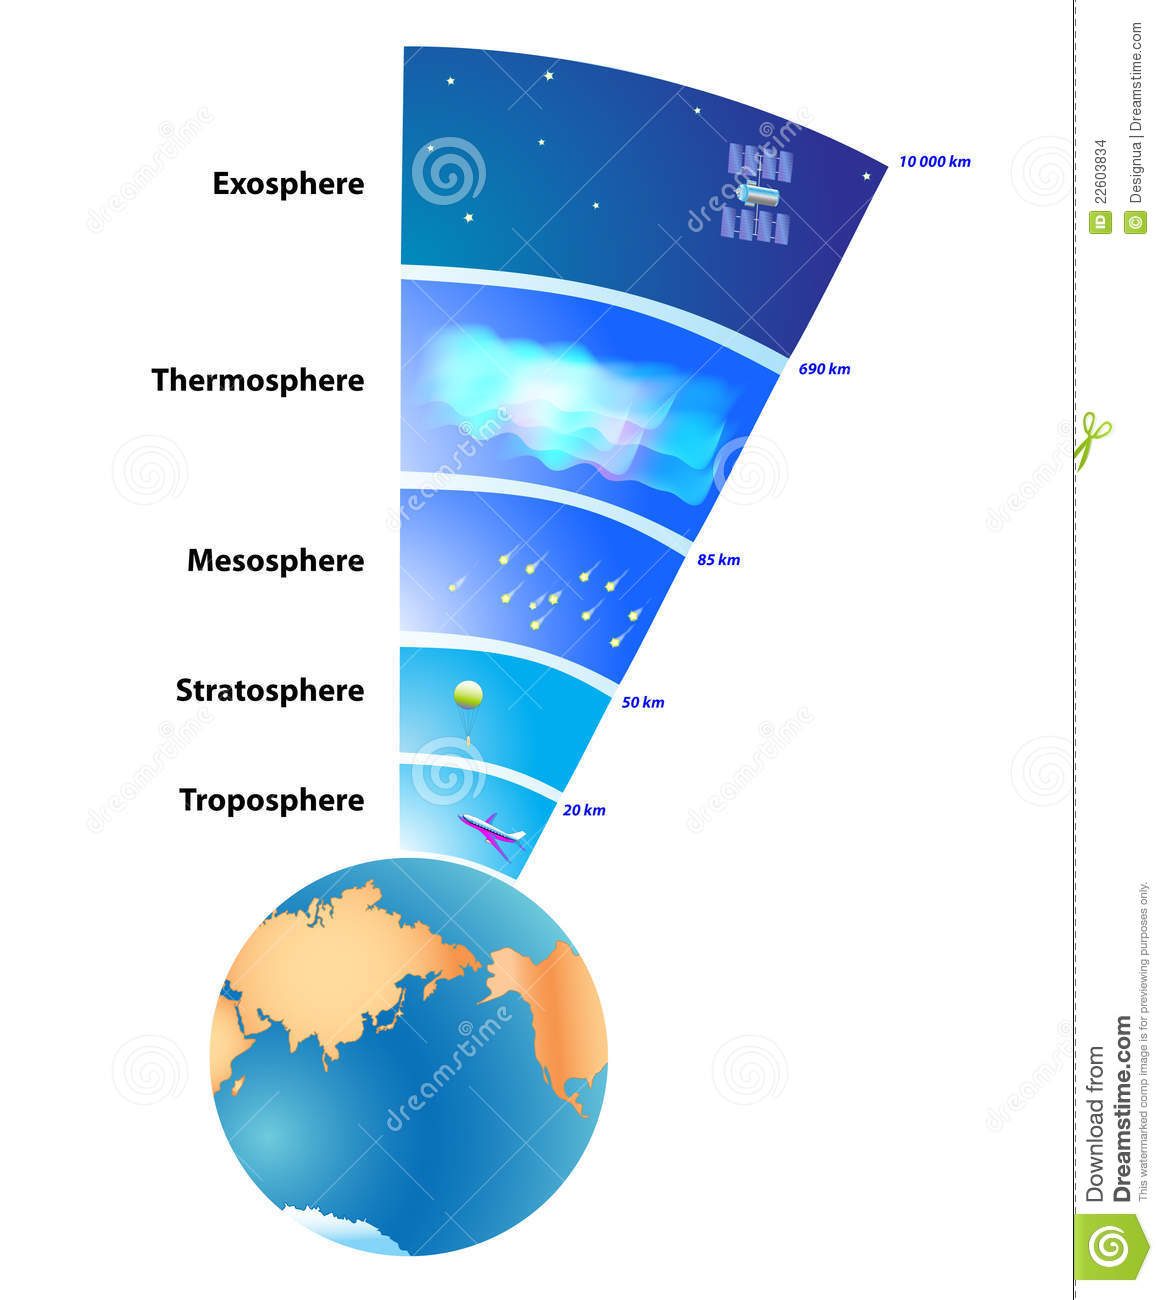 Earths atmosphere layers stock illustration illustration of earth s atmosphere layers pooptronica Image collections